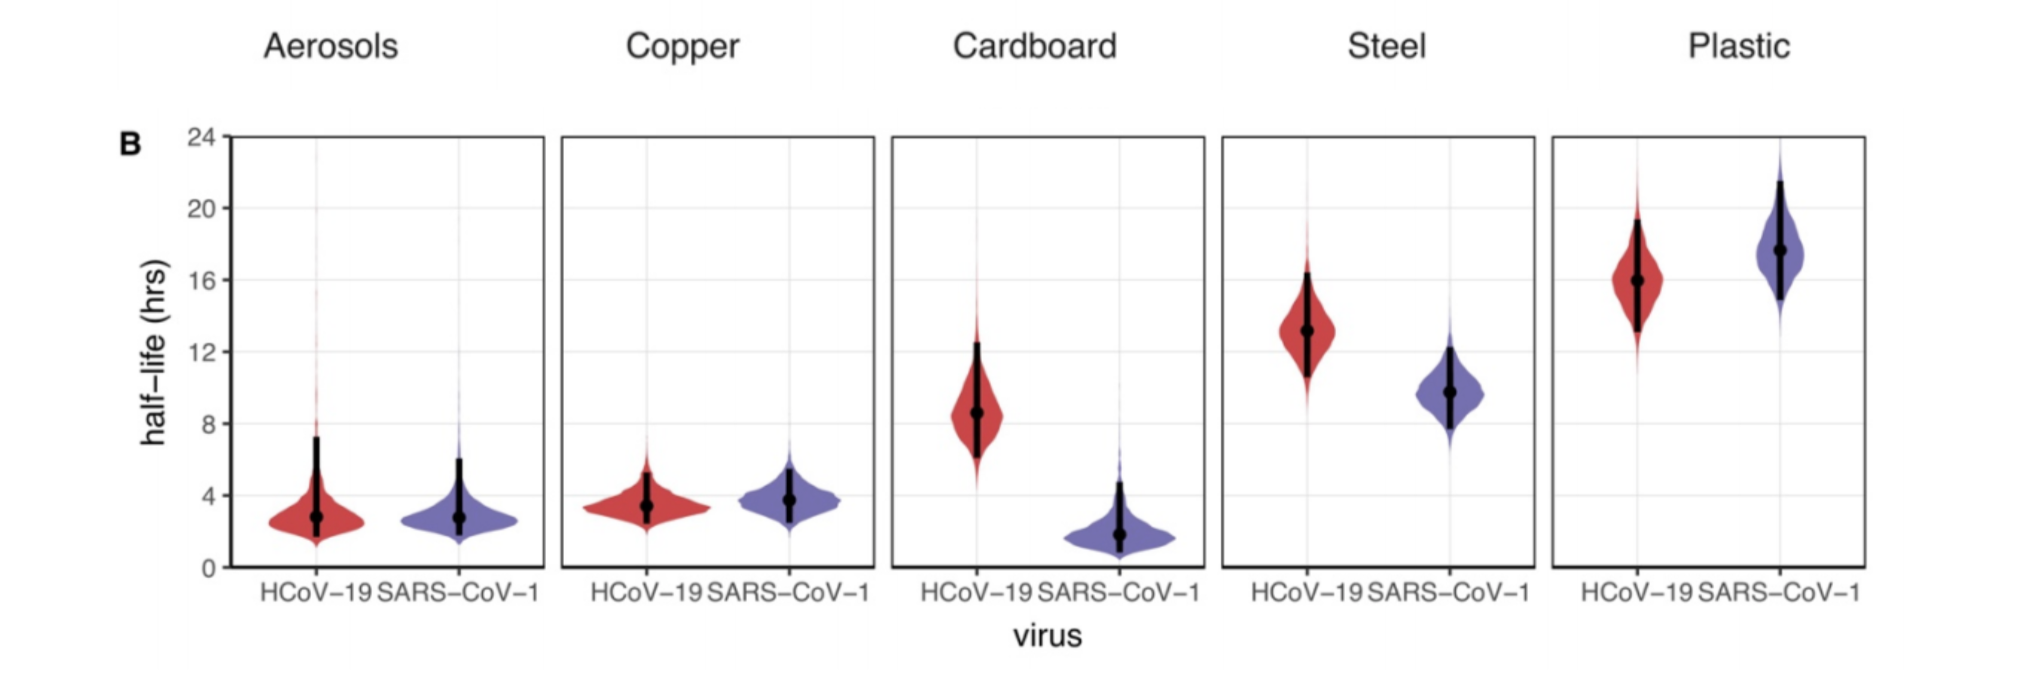 Graph illustrating the half life of viruses on different surfaces